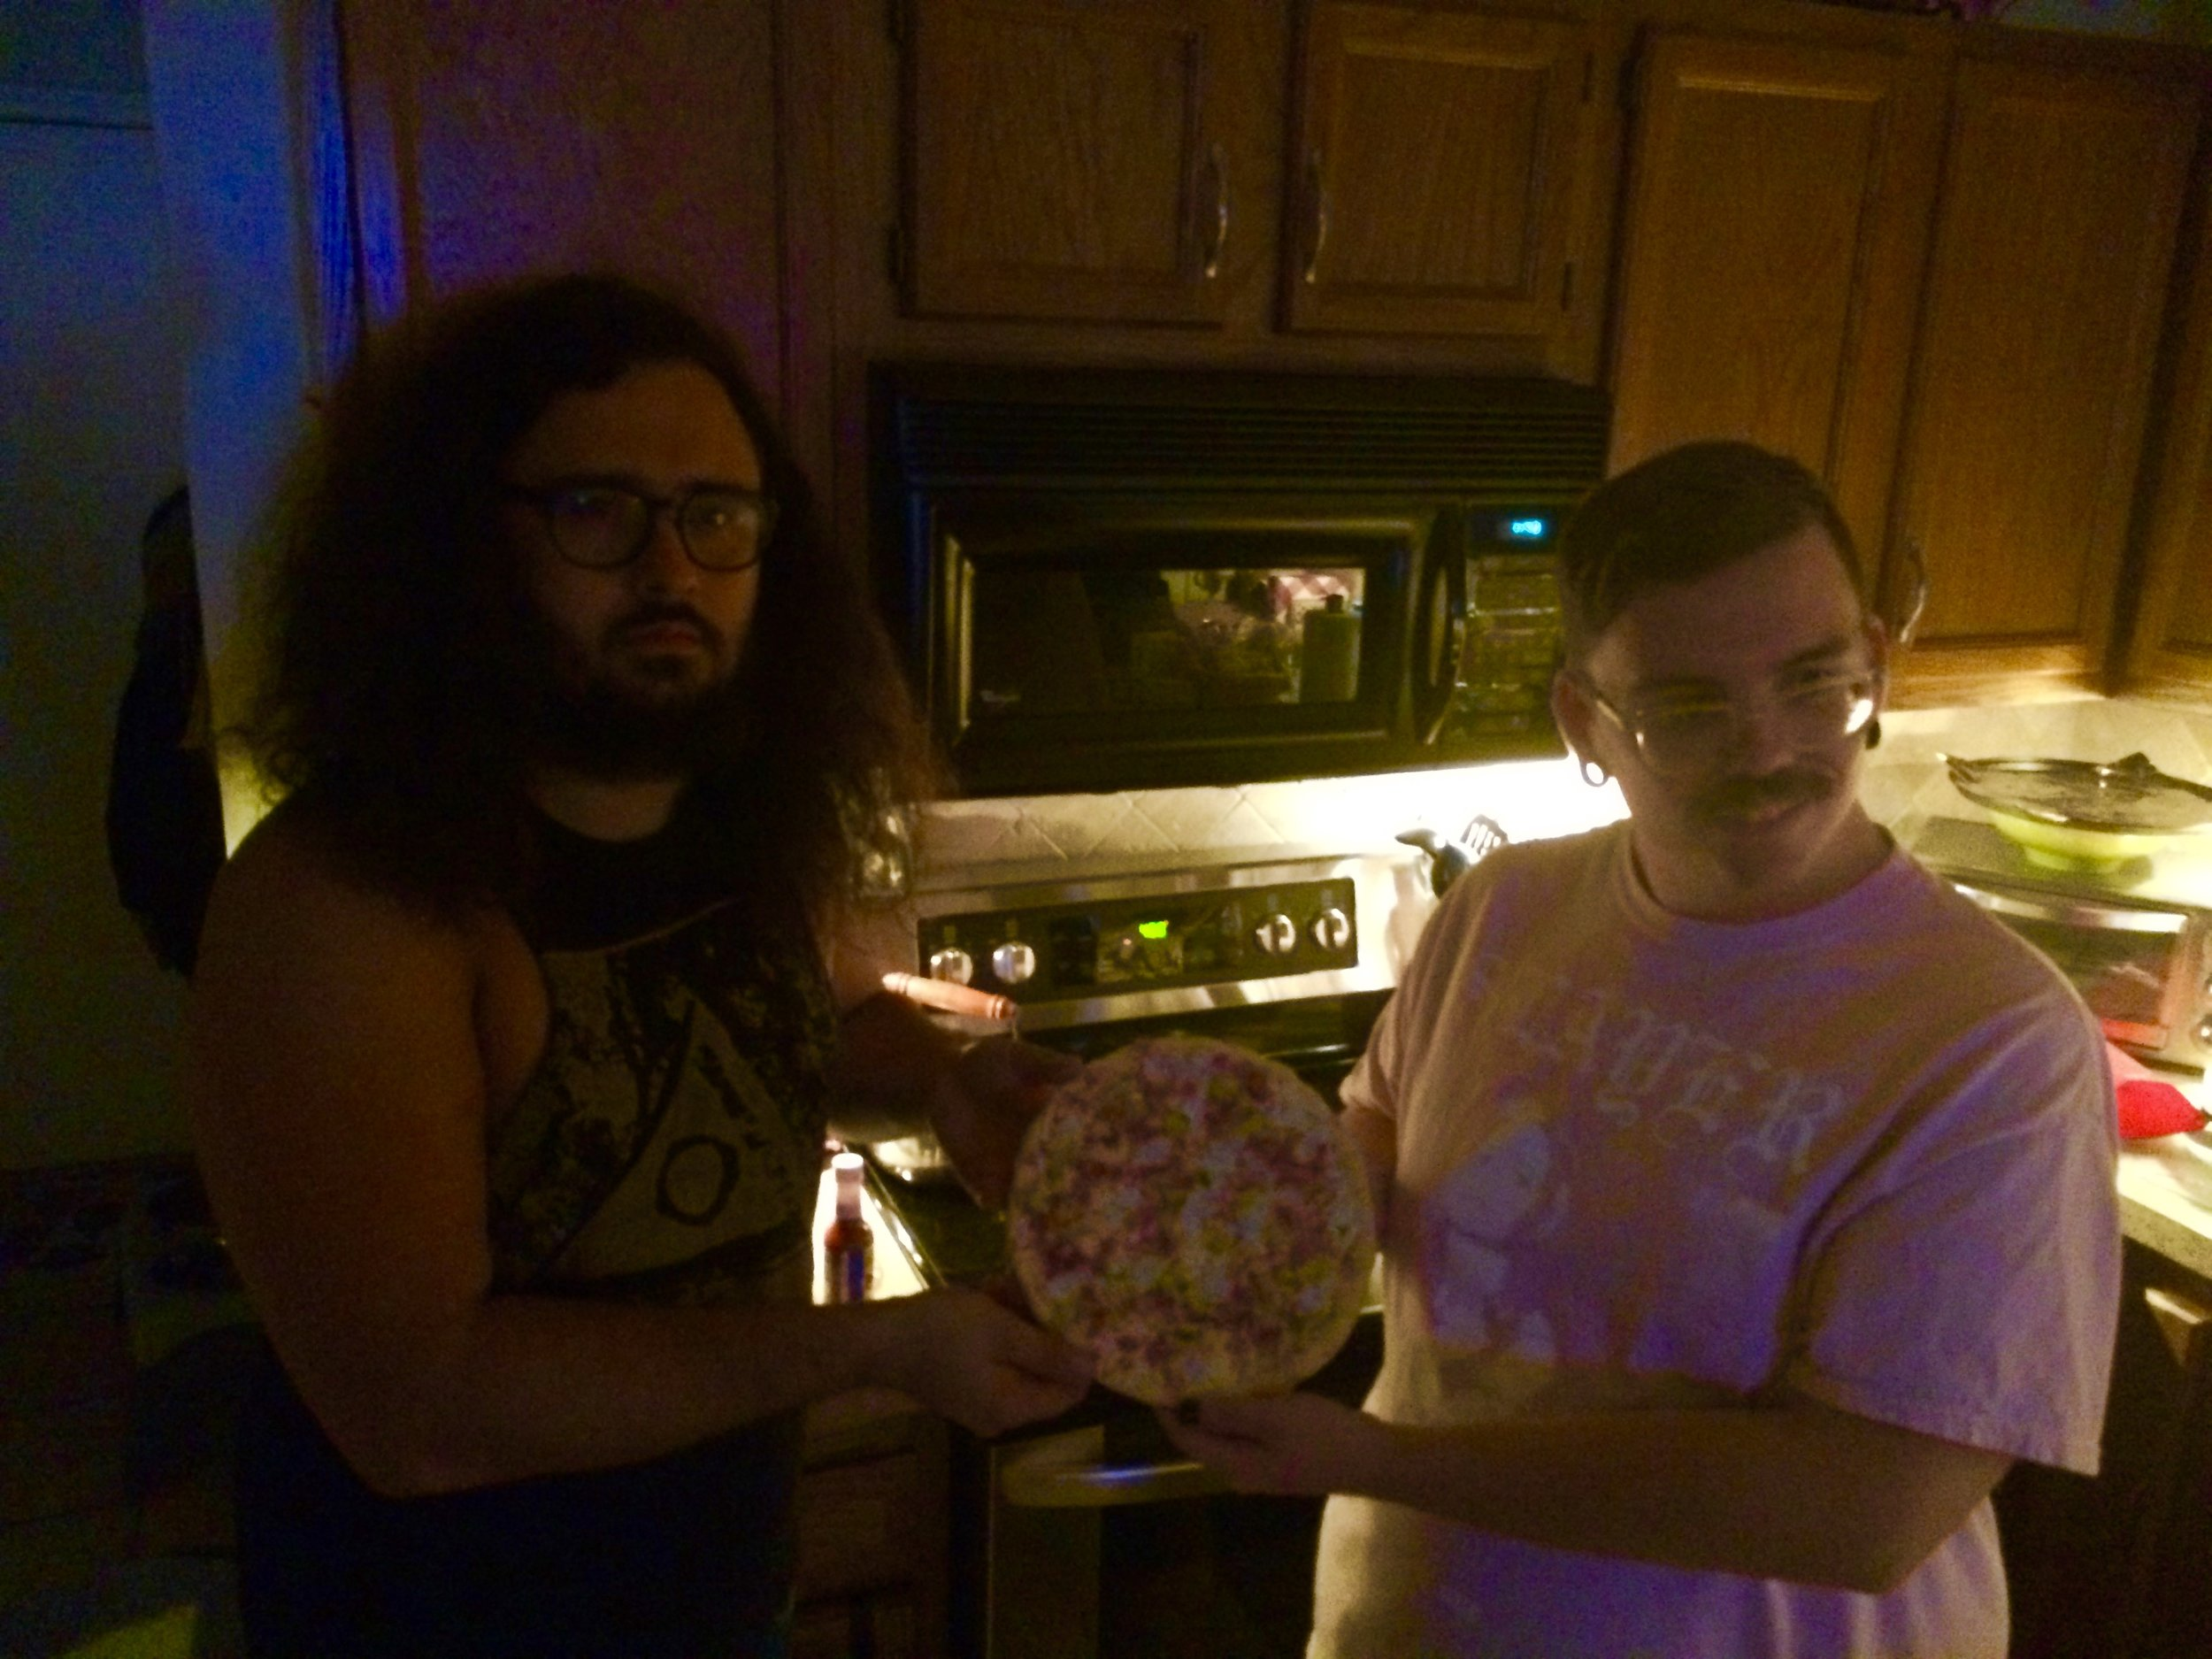 Daisy and his good friend Zach being pizza models.Zach let us crash at his house.